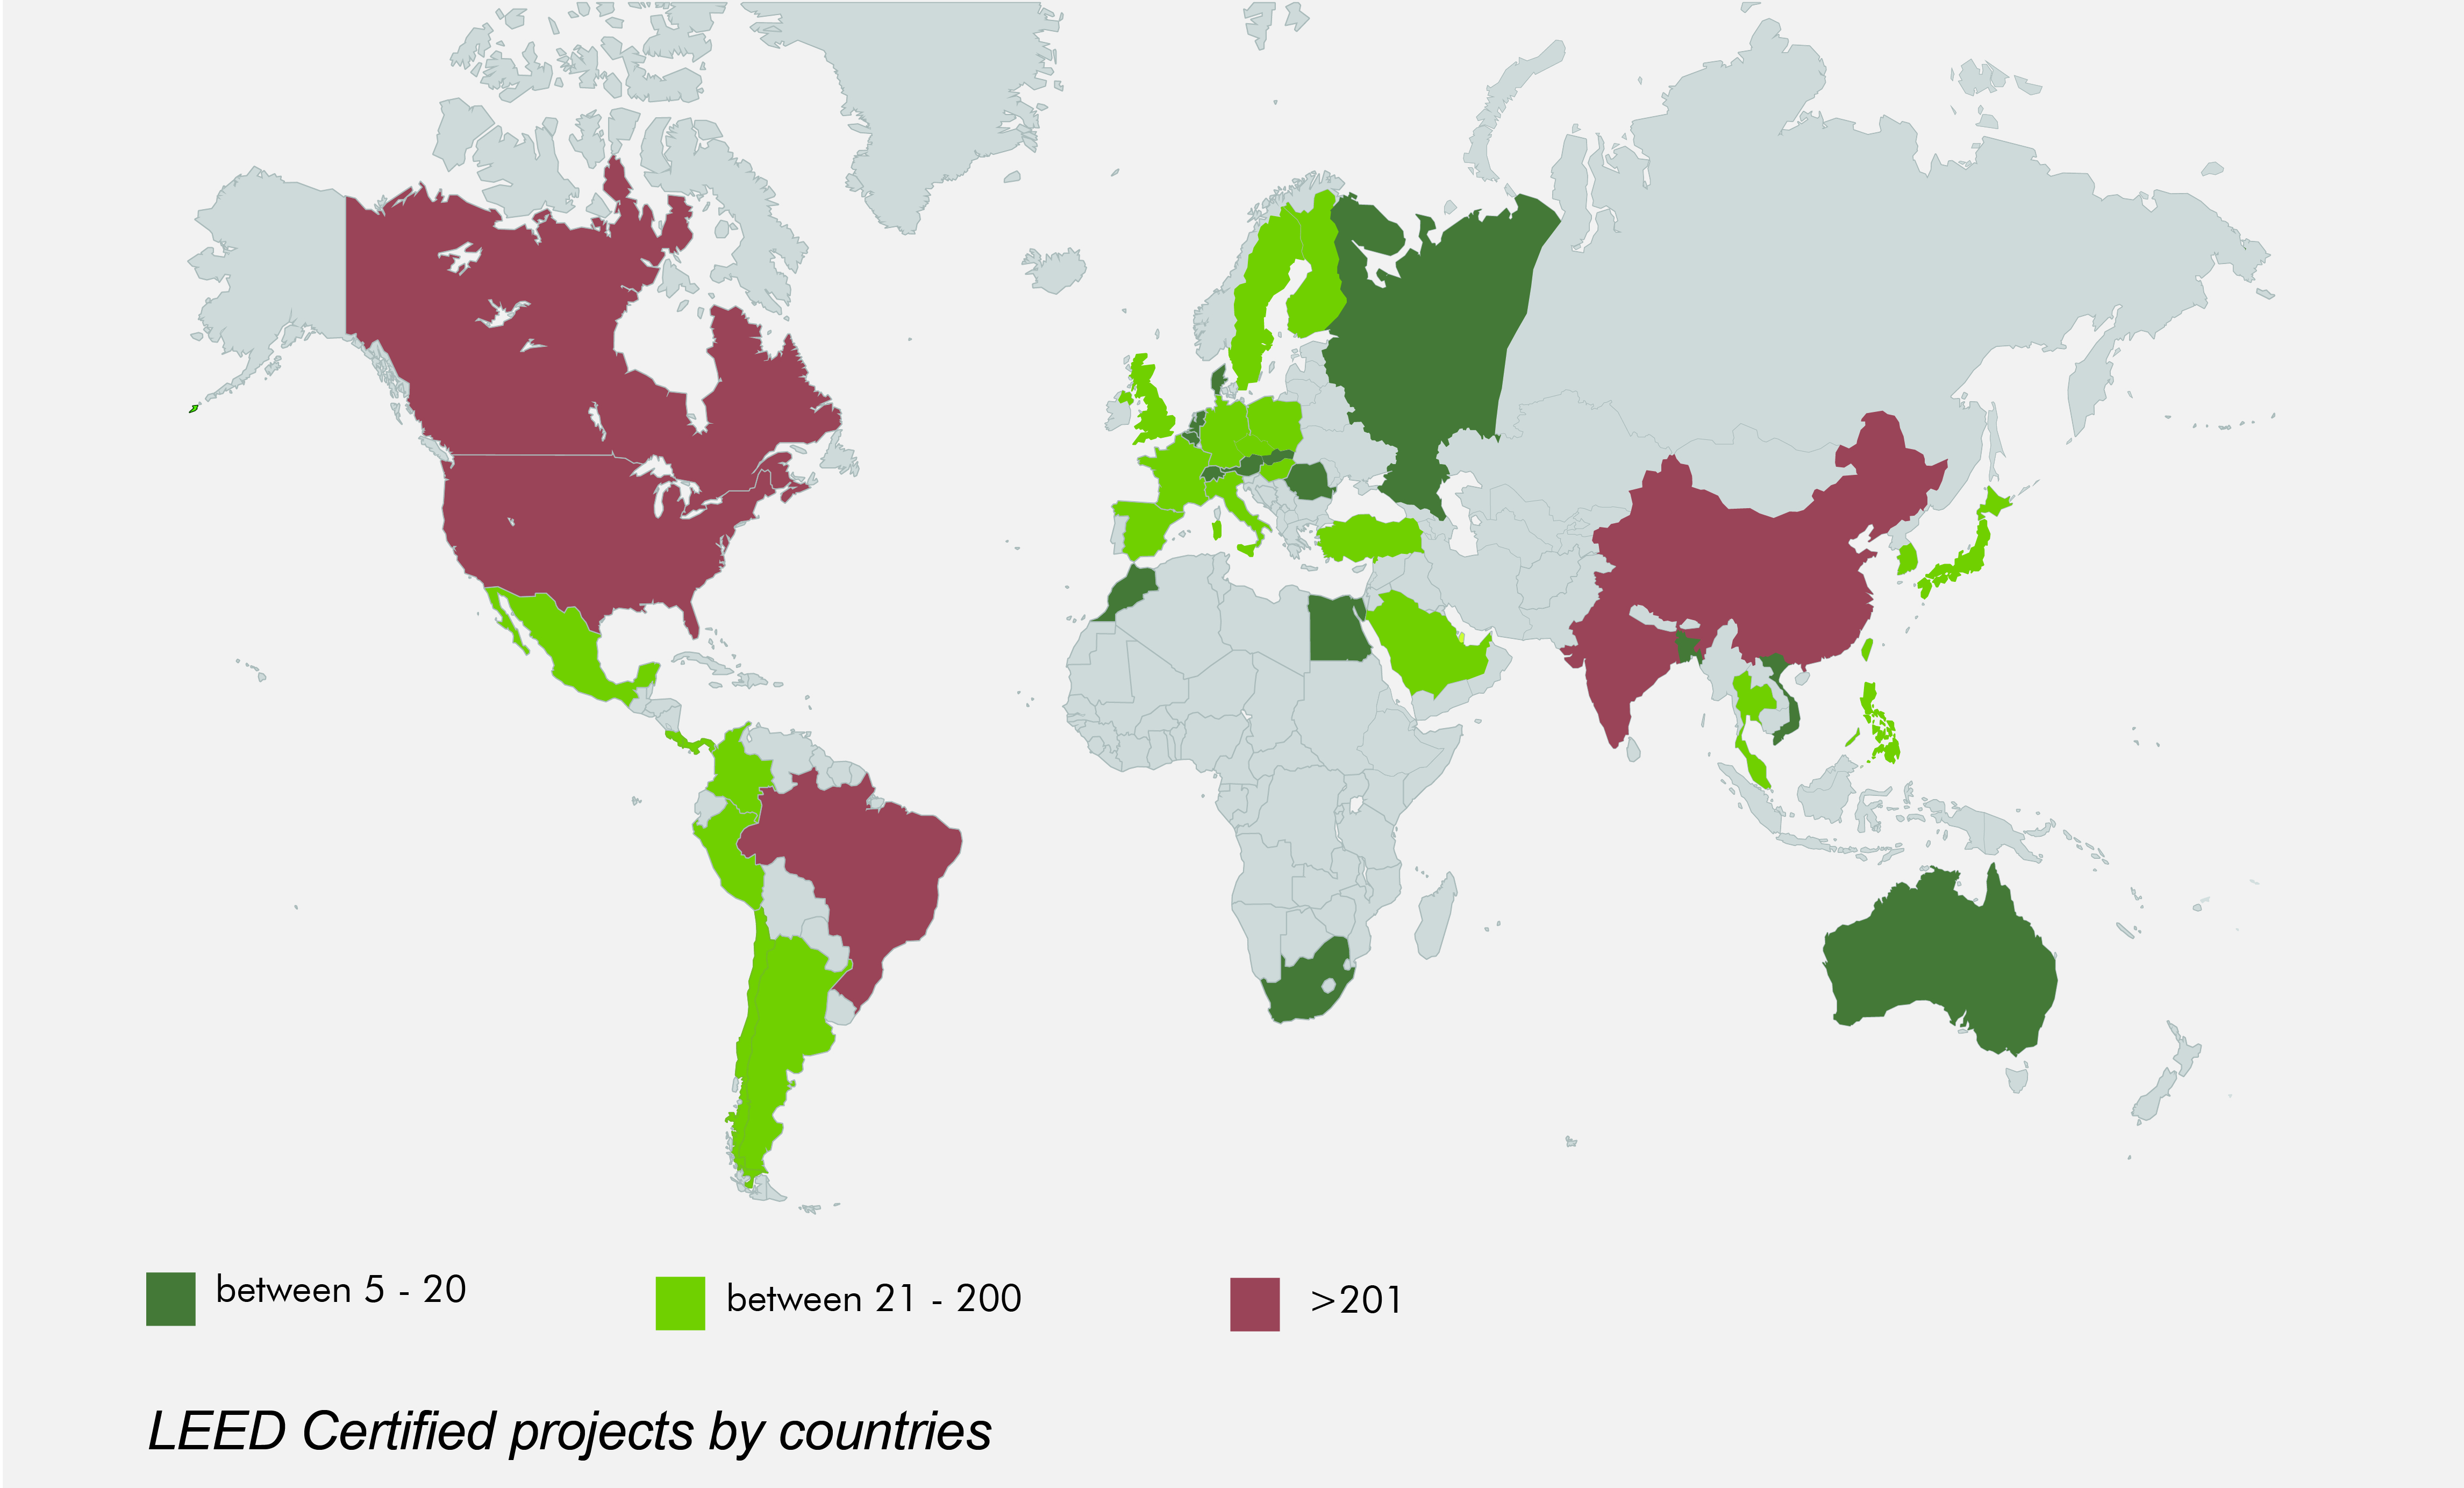 Market penetration of LEED certification systems around the world